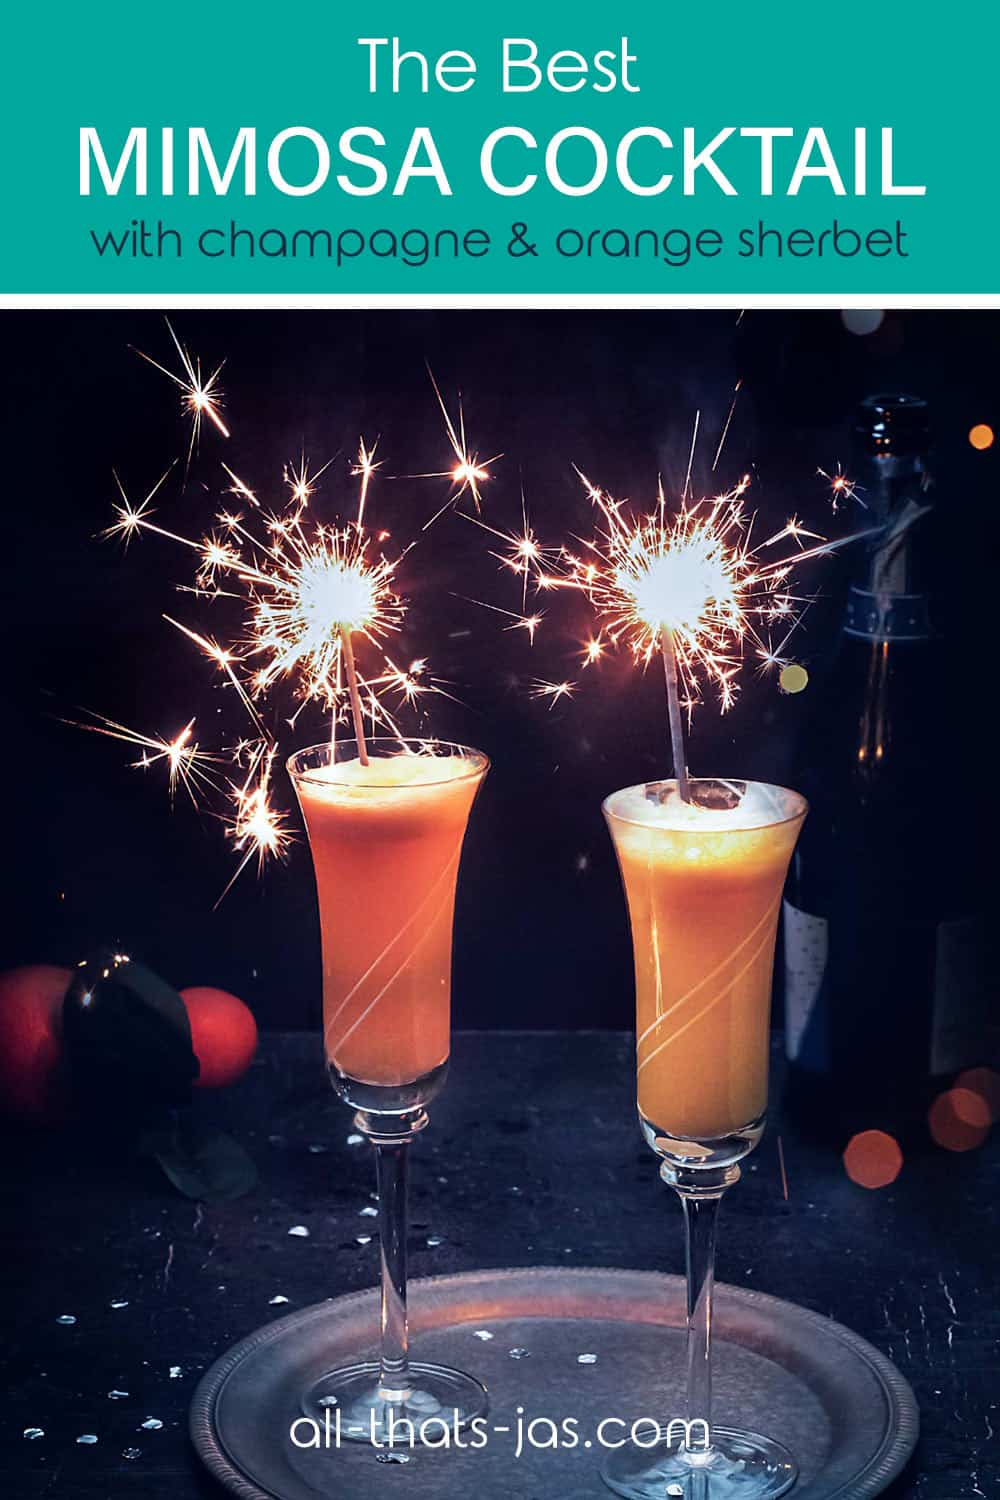 New Year's mimosa cocktail with sparklers and text overlay.